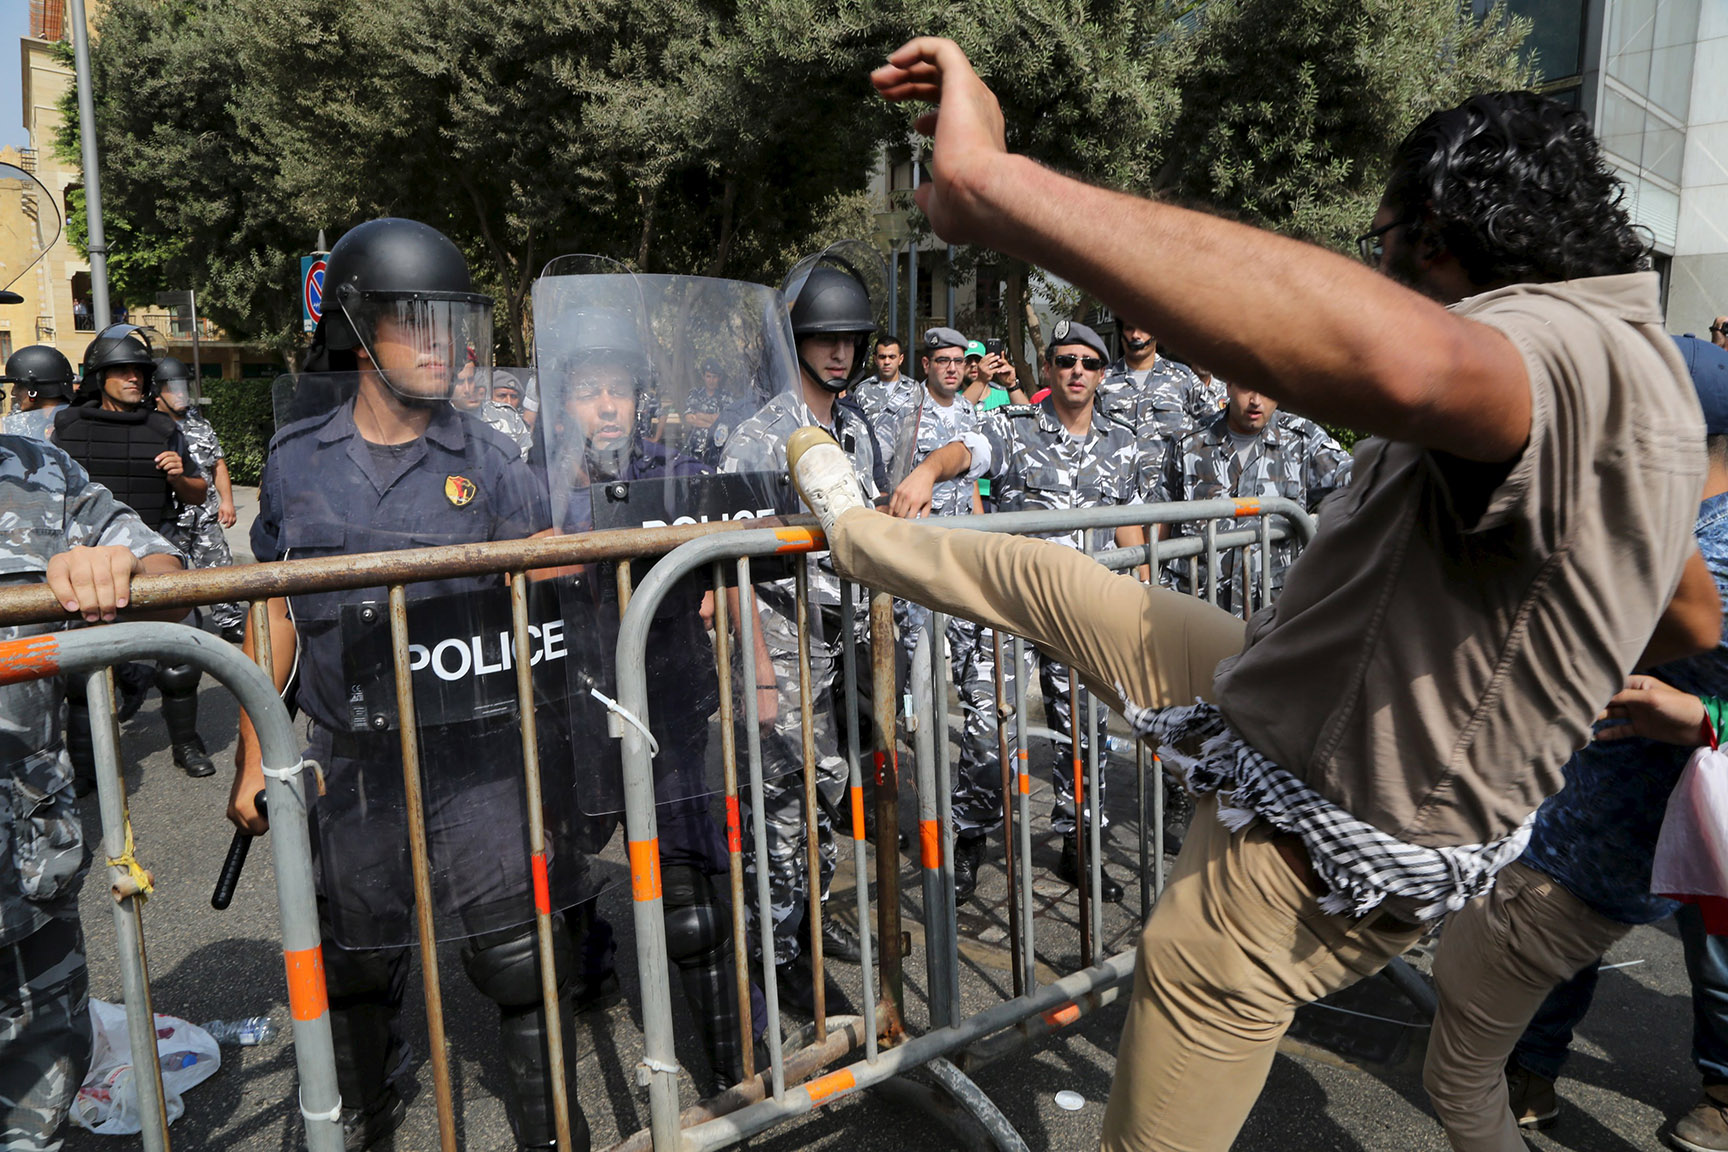 A protester kicks a barrier near riot police in downtown Beirut, Lebanon